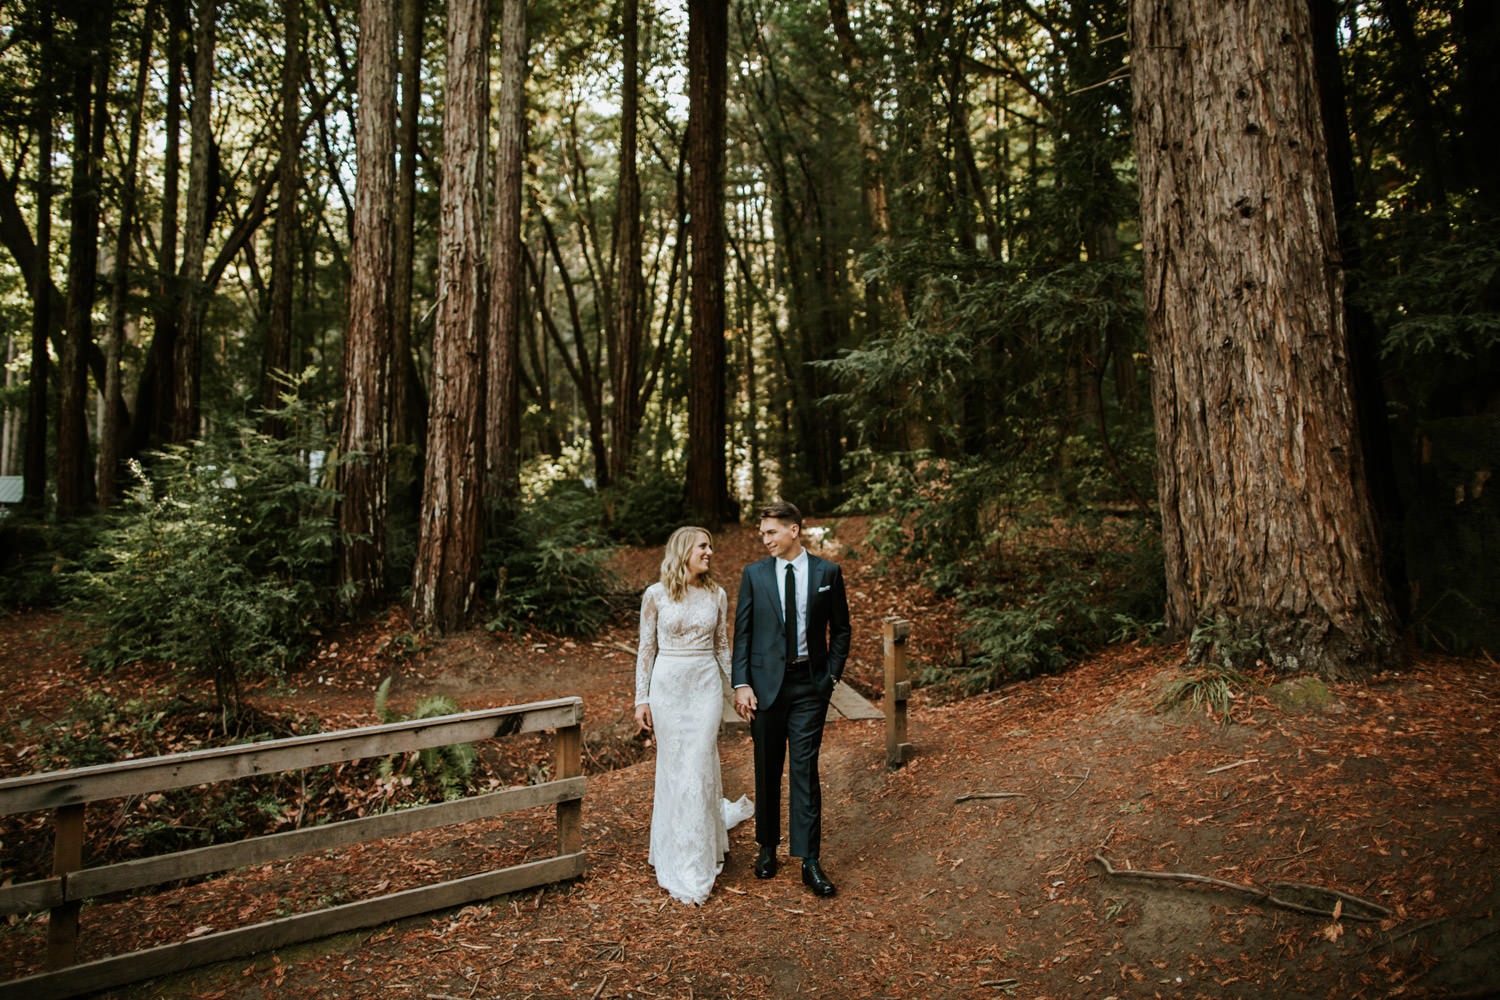 Bride and groom explore the trails of YMCA Camp Campbell during their wedding day